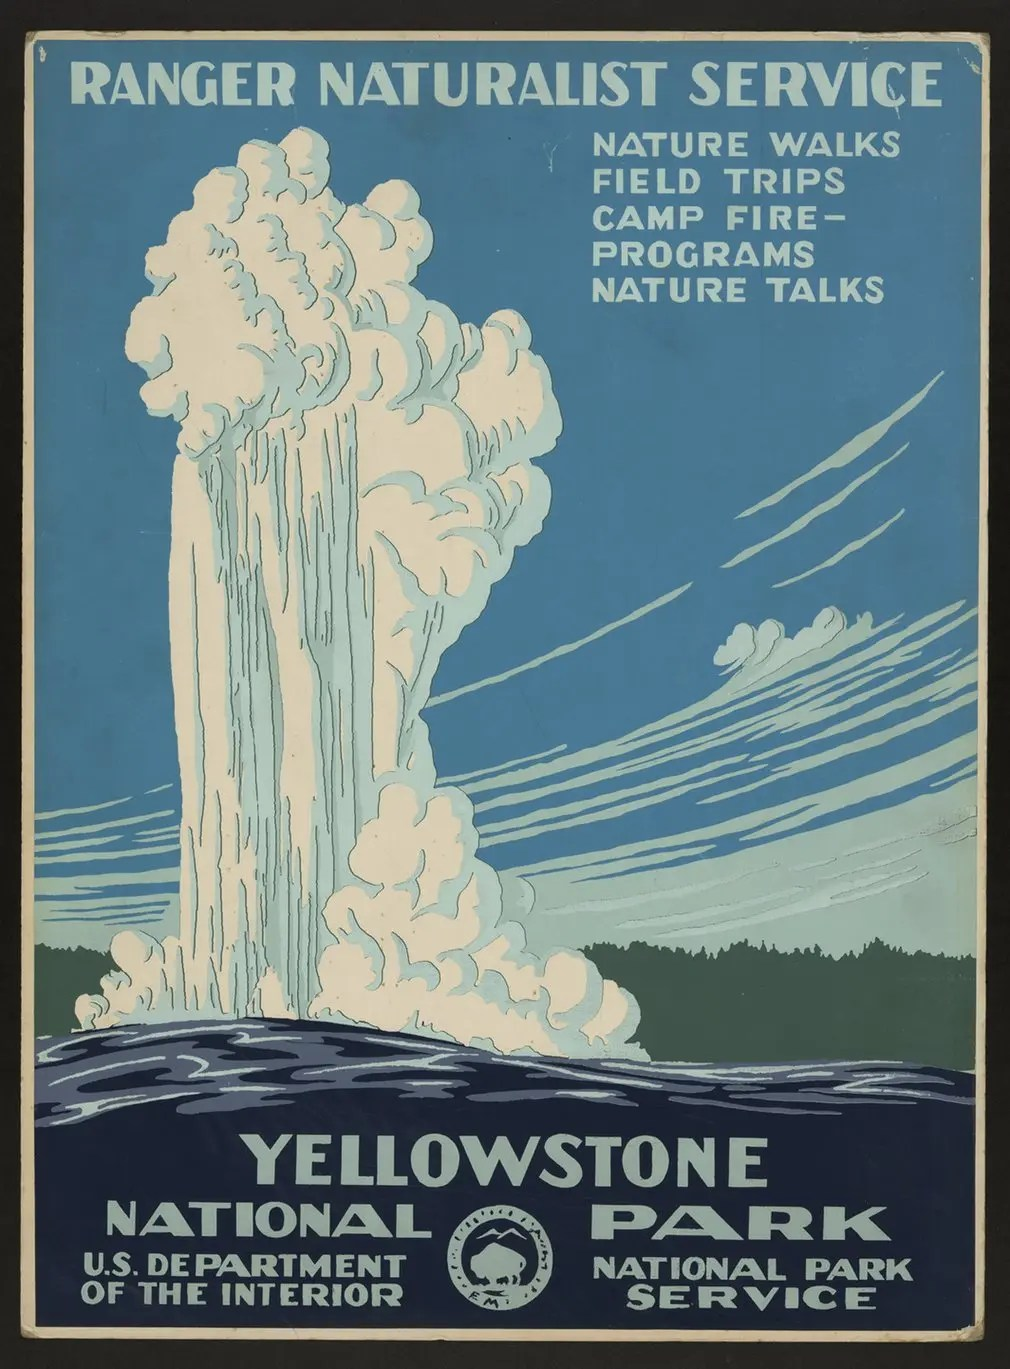 Old Faithful erupting at Yellowstone national park, circa 1938